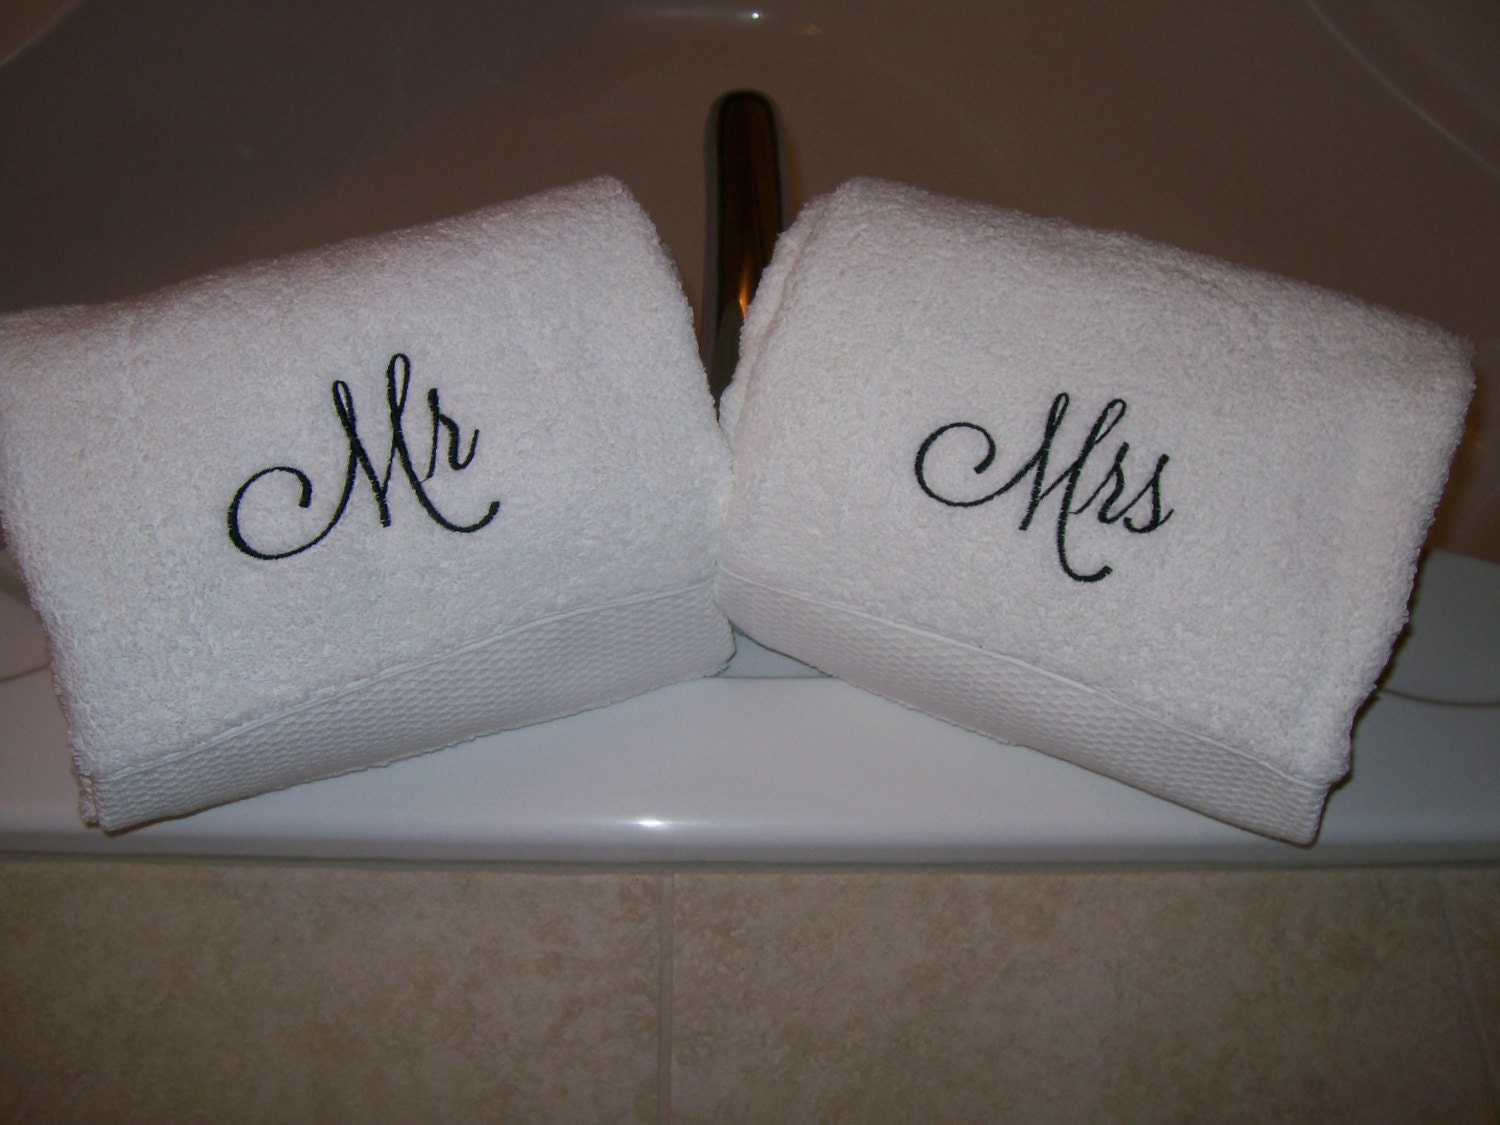 Mr and mrs embroidered luxury bath towels wedding gift for Embroidered towels for wedding gift